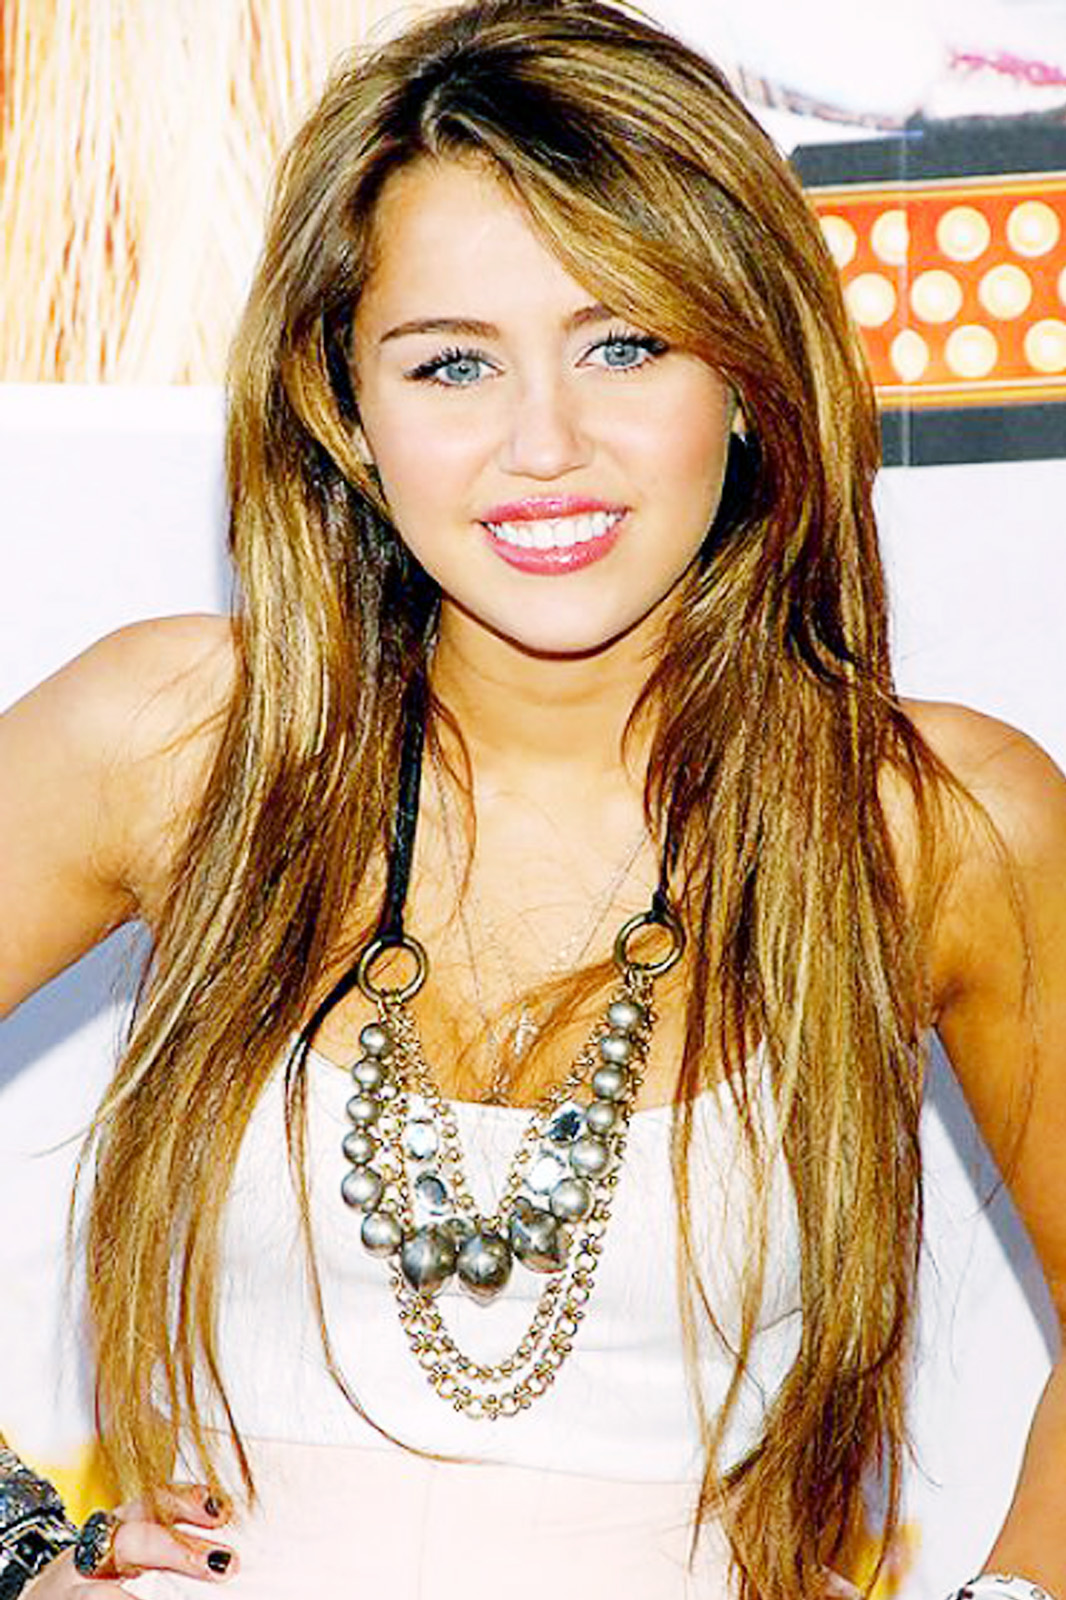 Miley Cyrus Hot Pictures  Miley Cyrus Wallpapers-7029